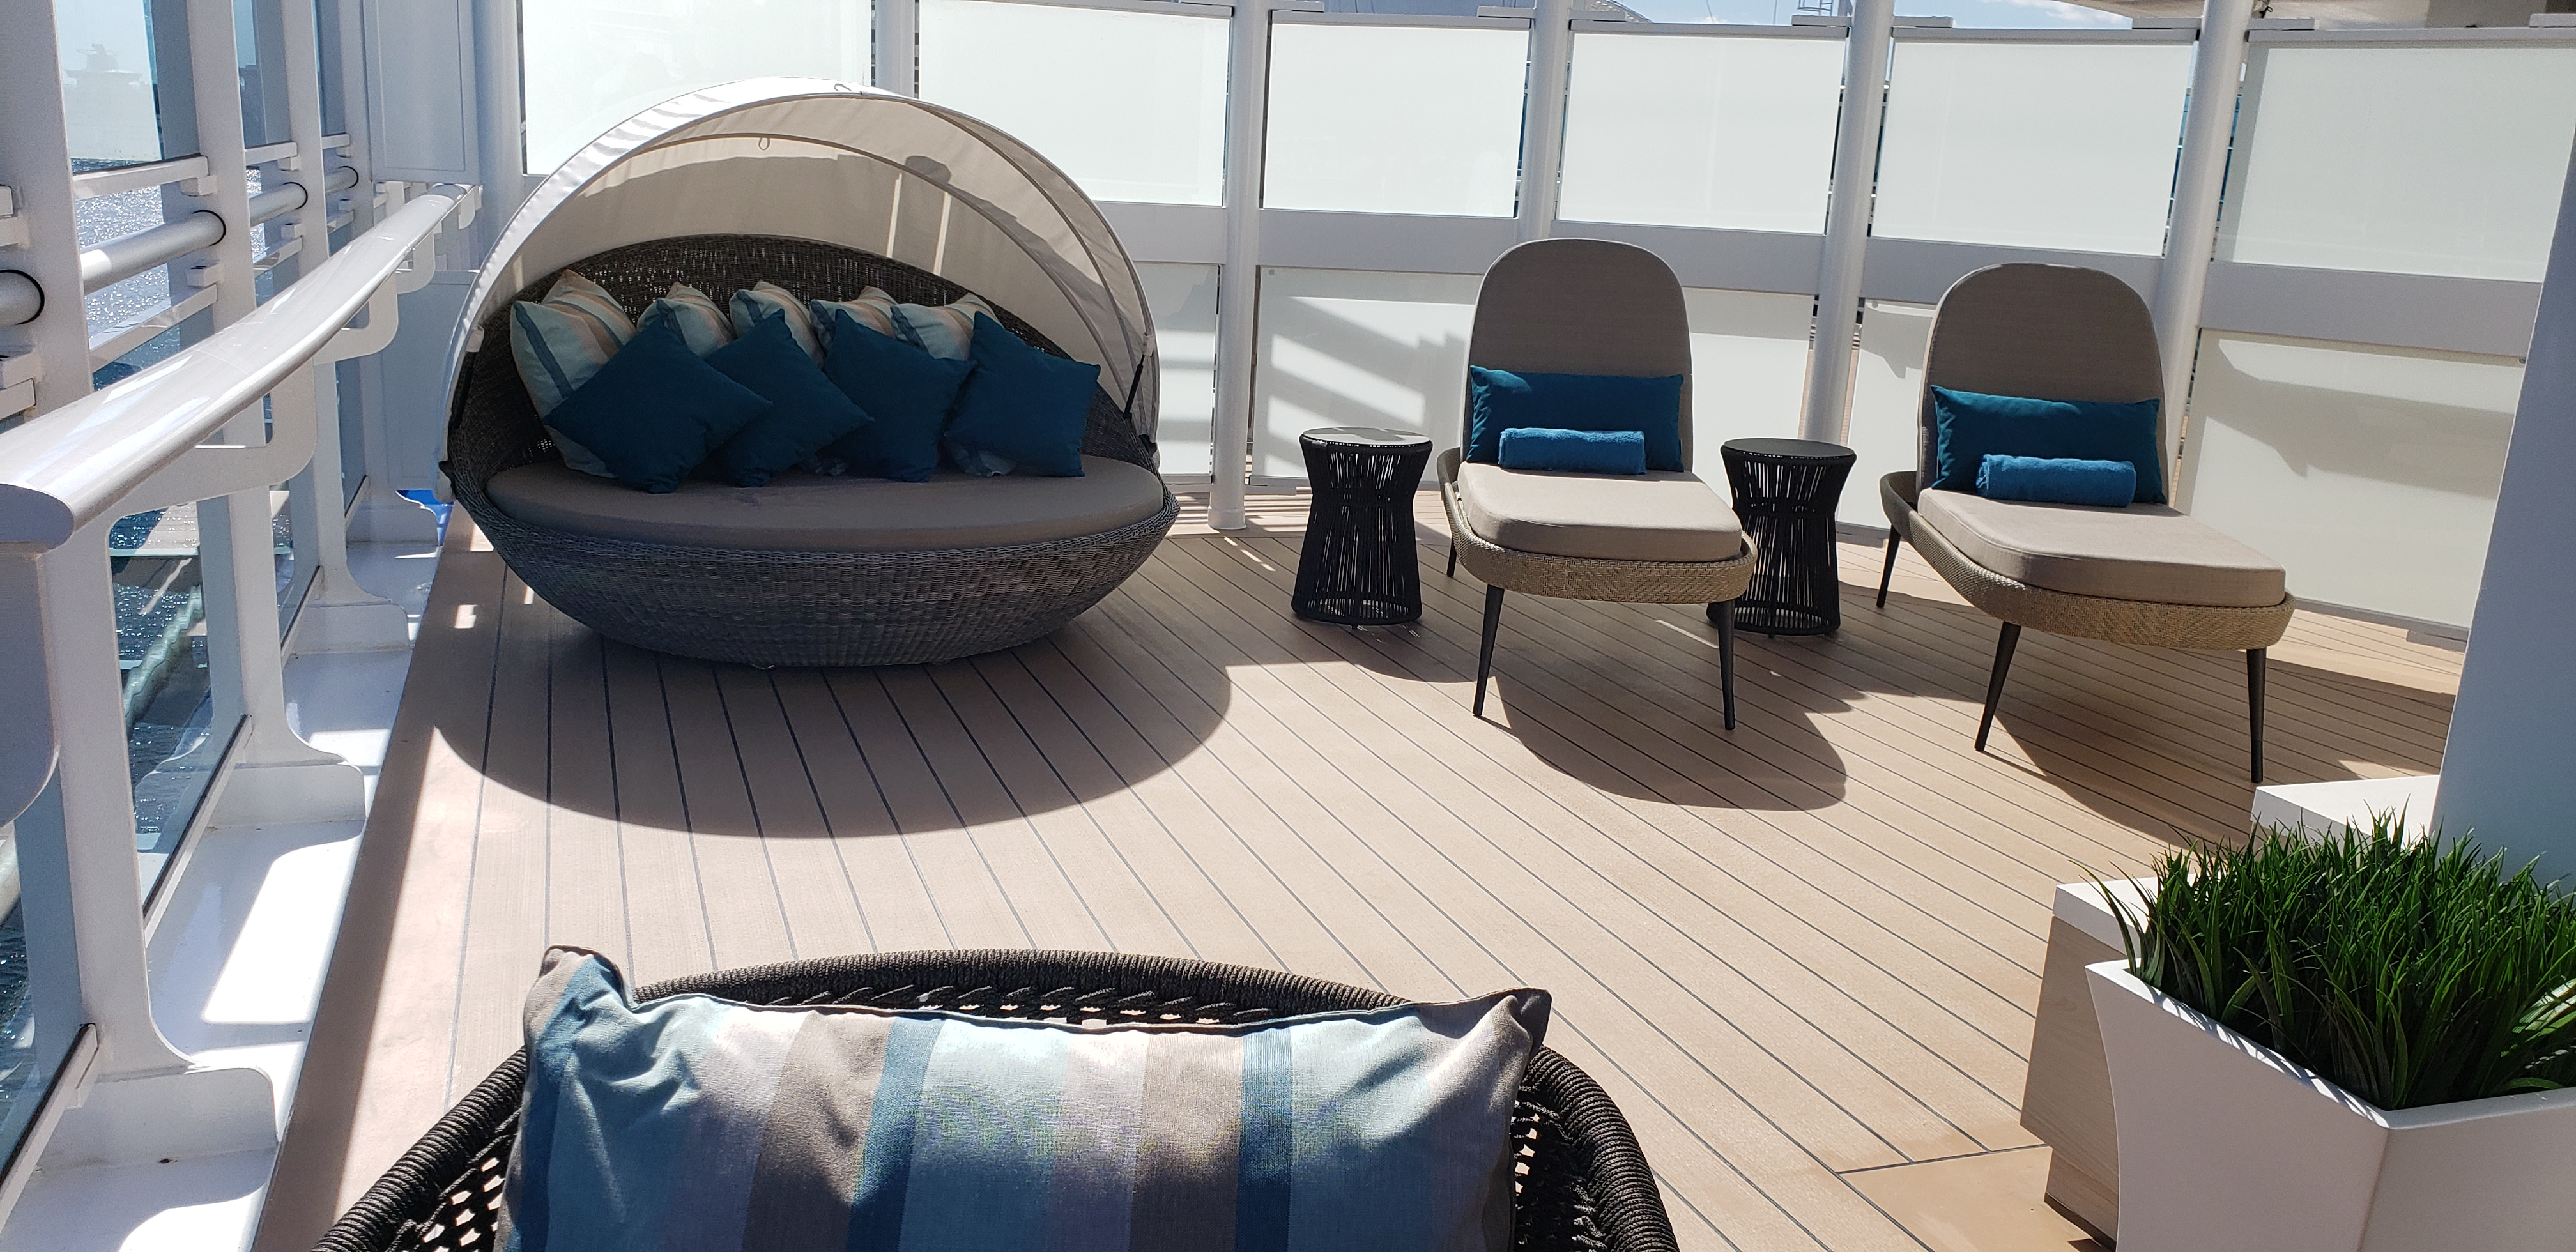 The sunning area on the Sky Suite's large balcony. Photo by Susan J. Young